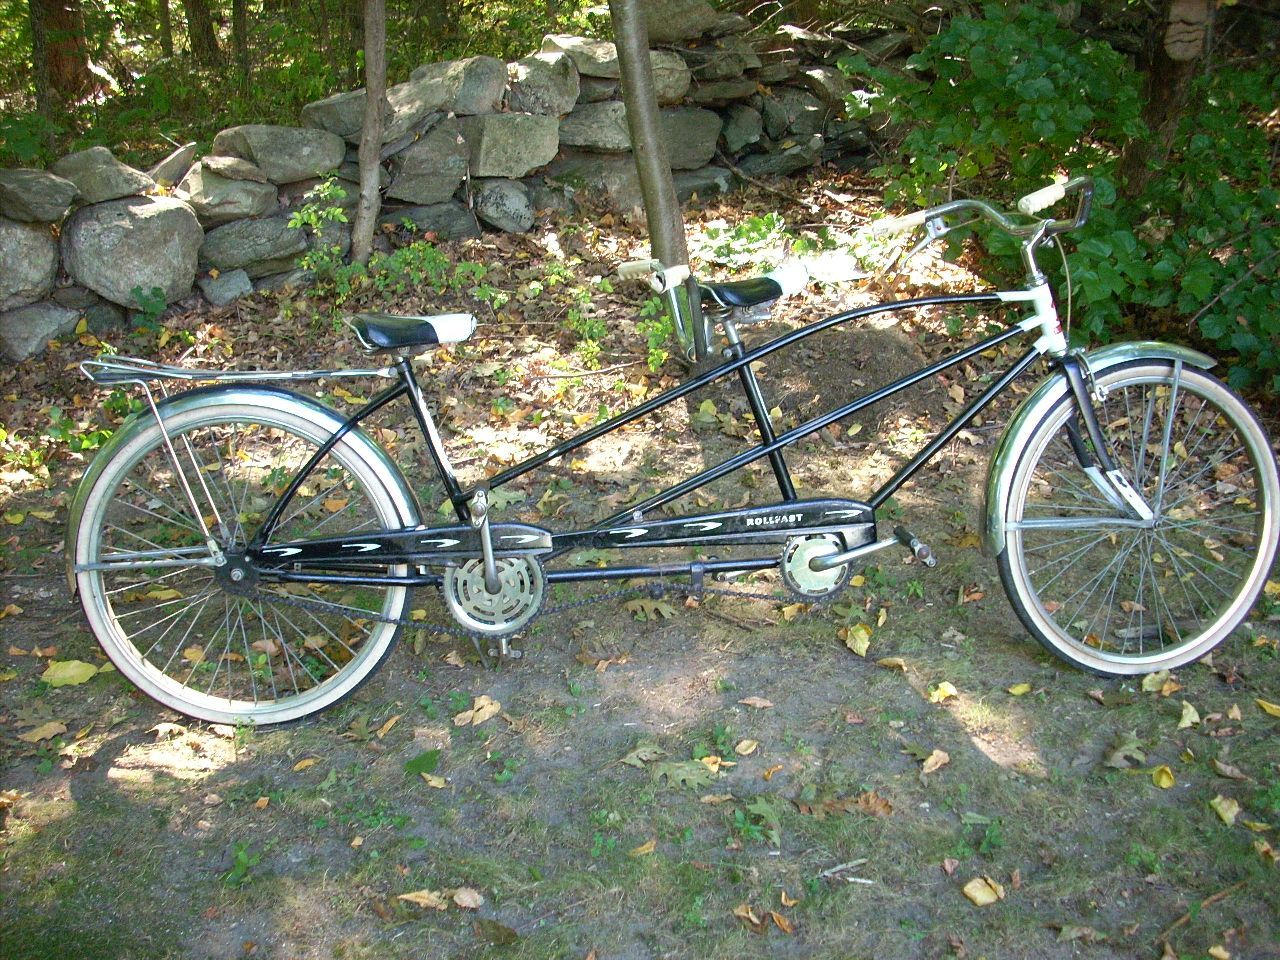 1962 Rollfast Tandem Would Love To Find One Just Like It